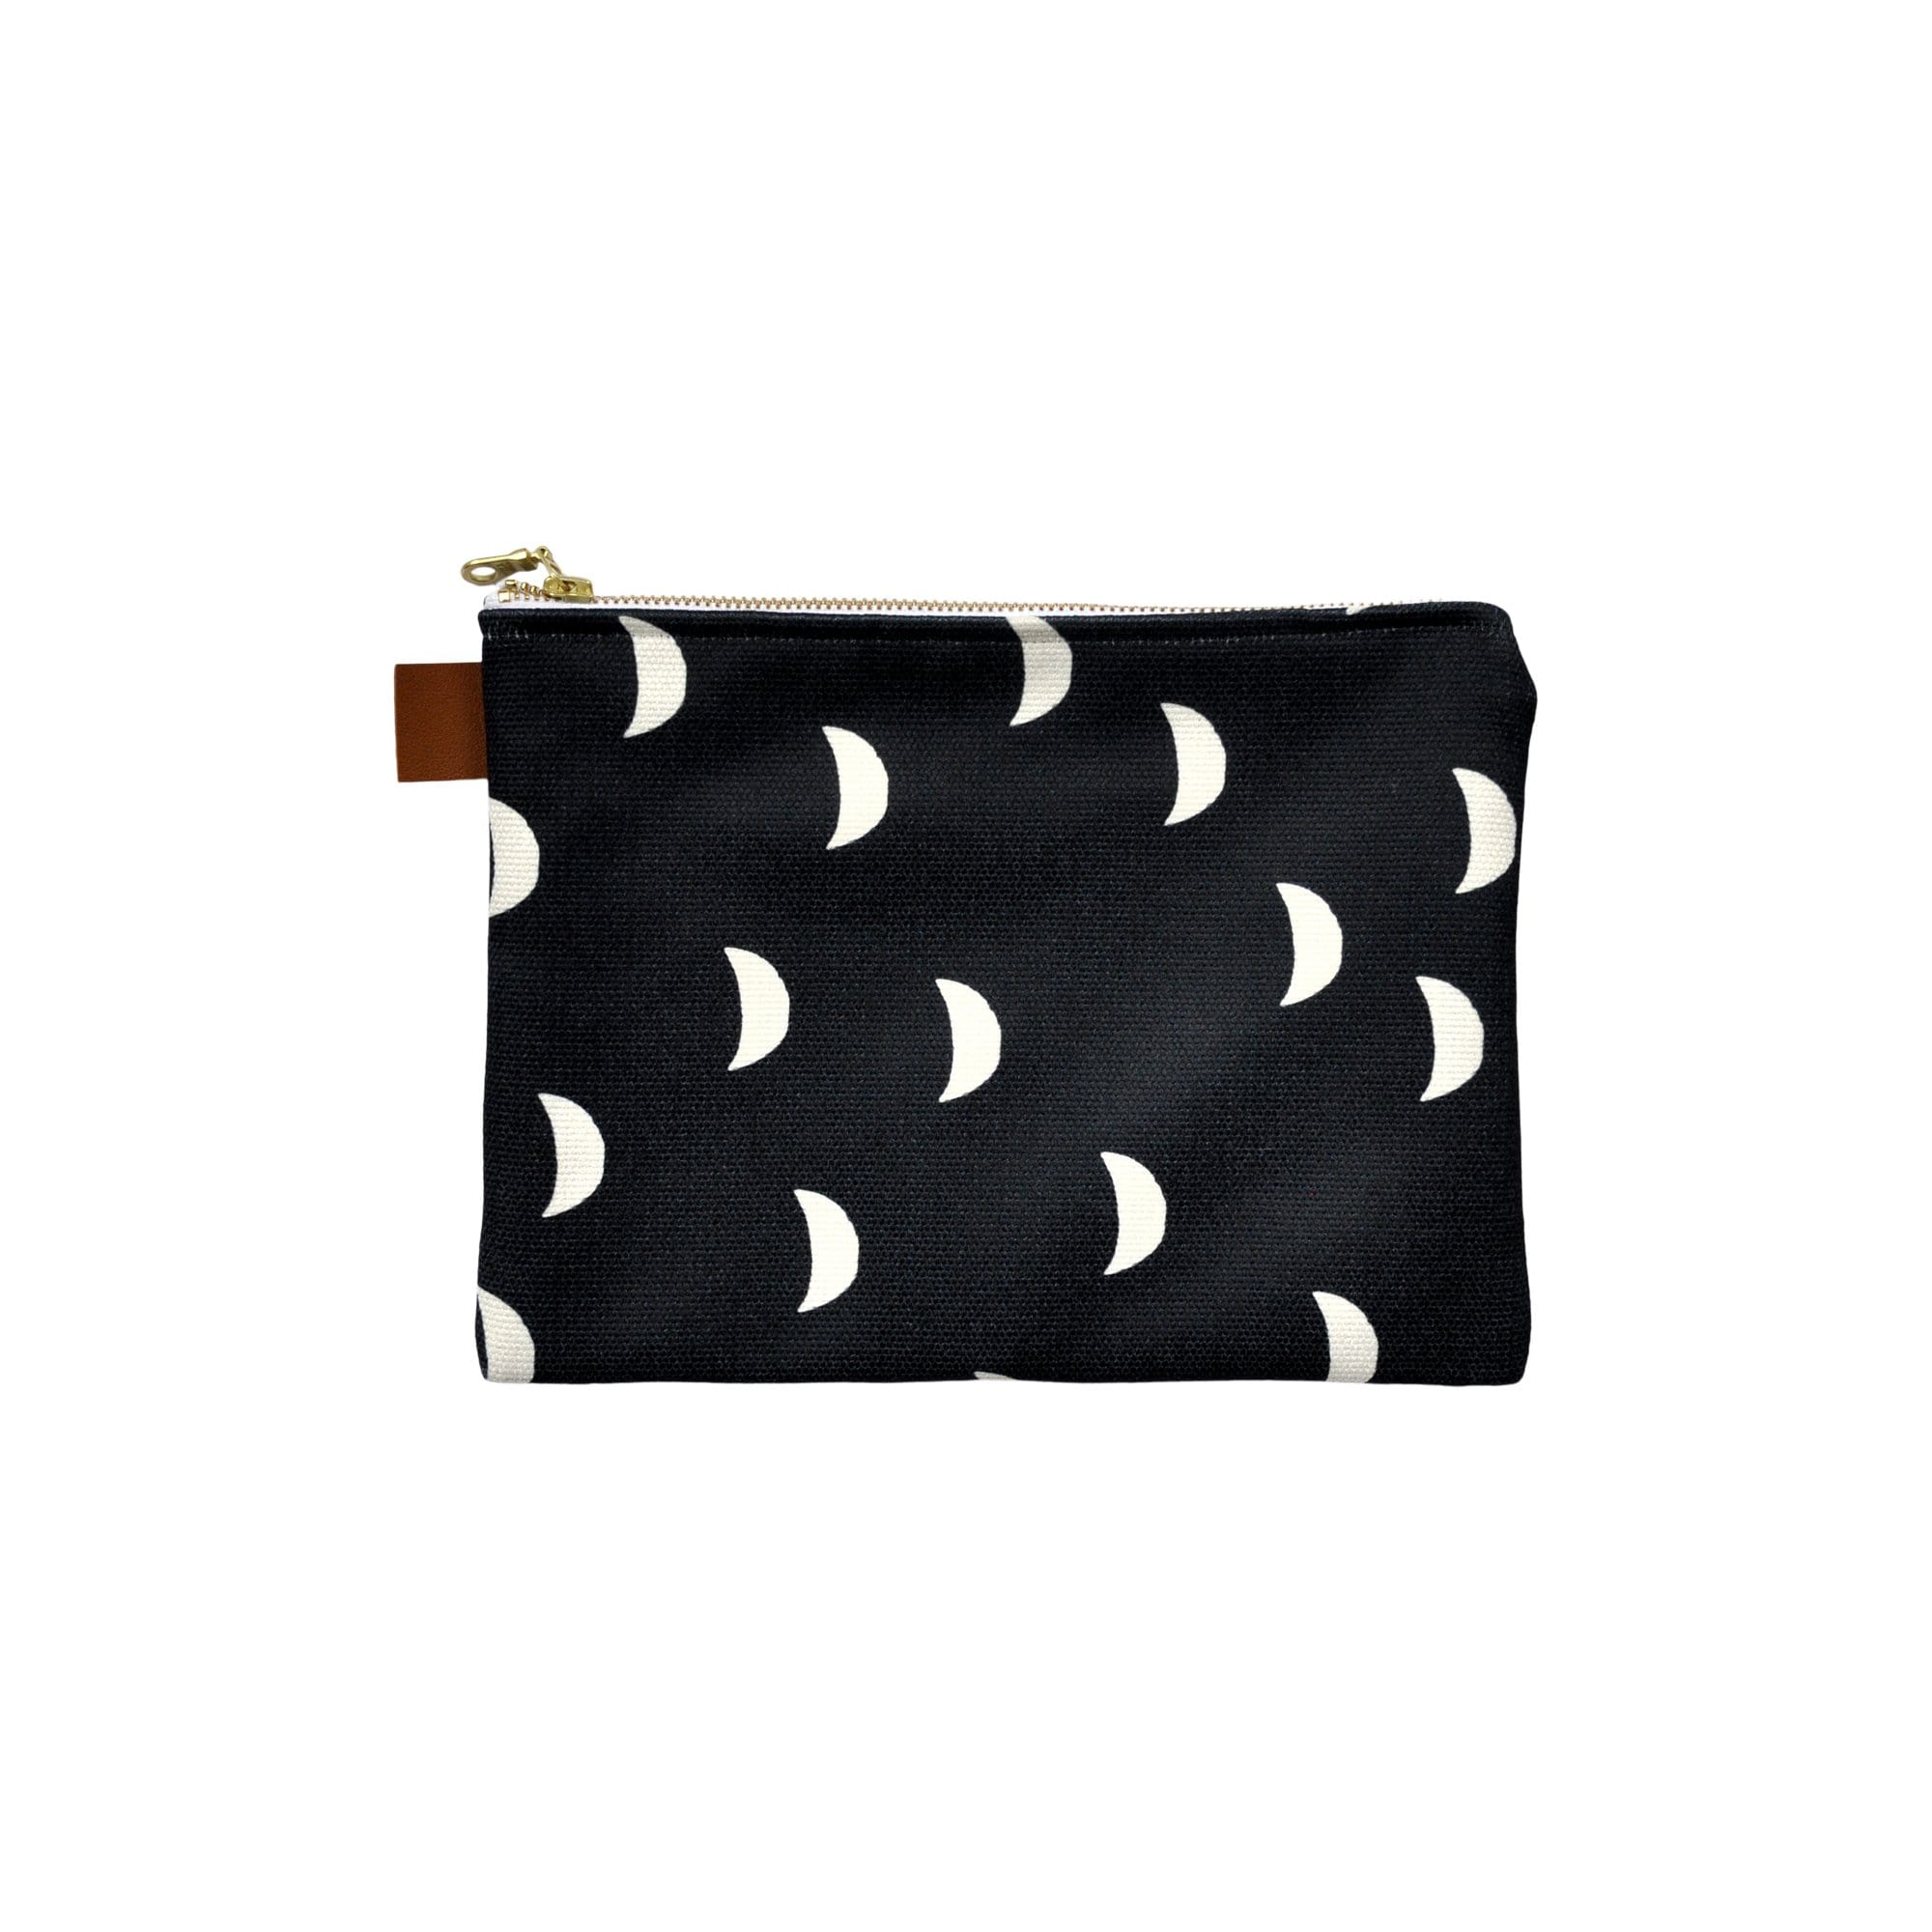 Swell Made Co. Handbags + Clutches Moons Canvas Pouch